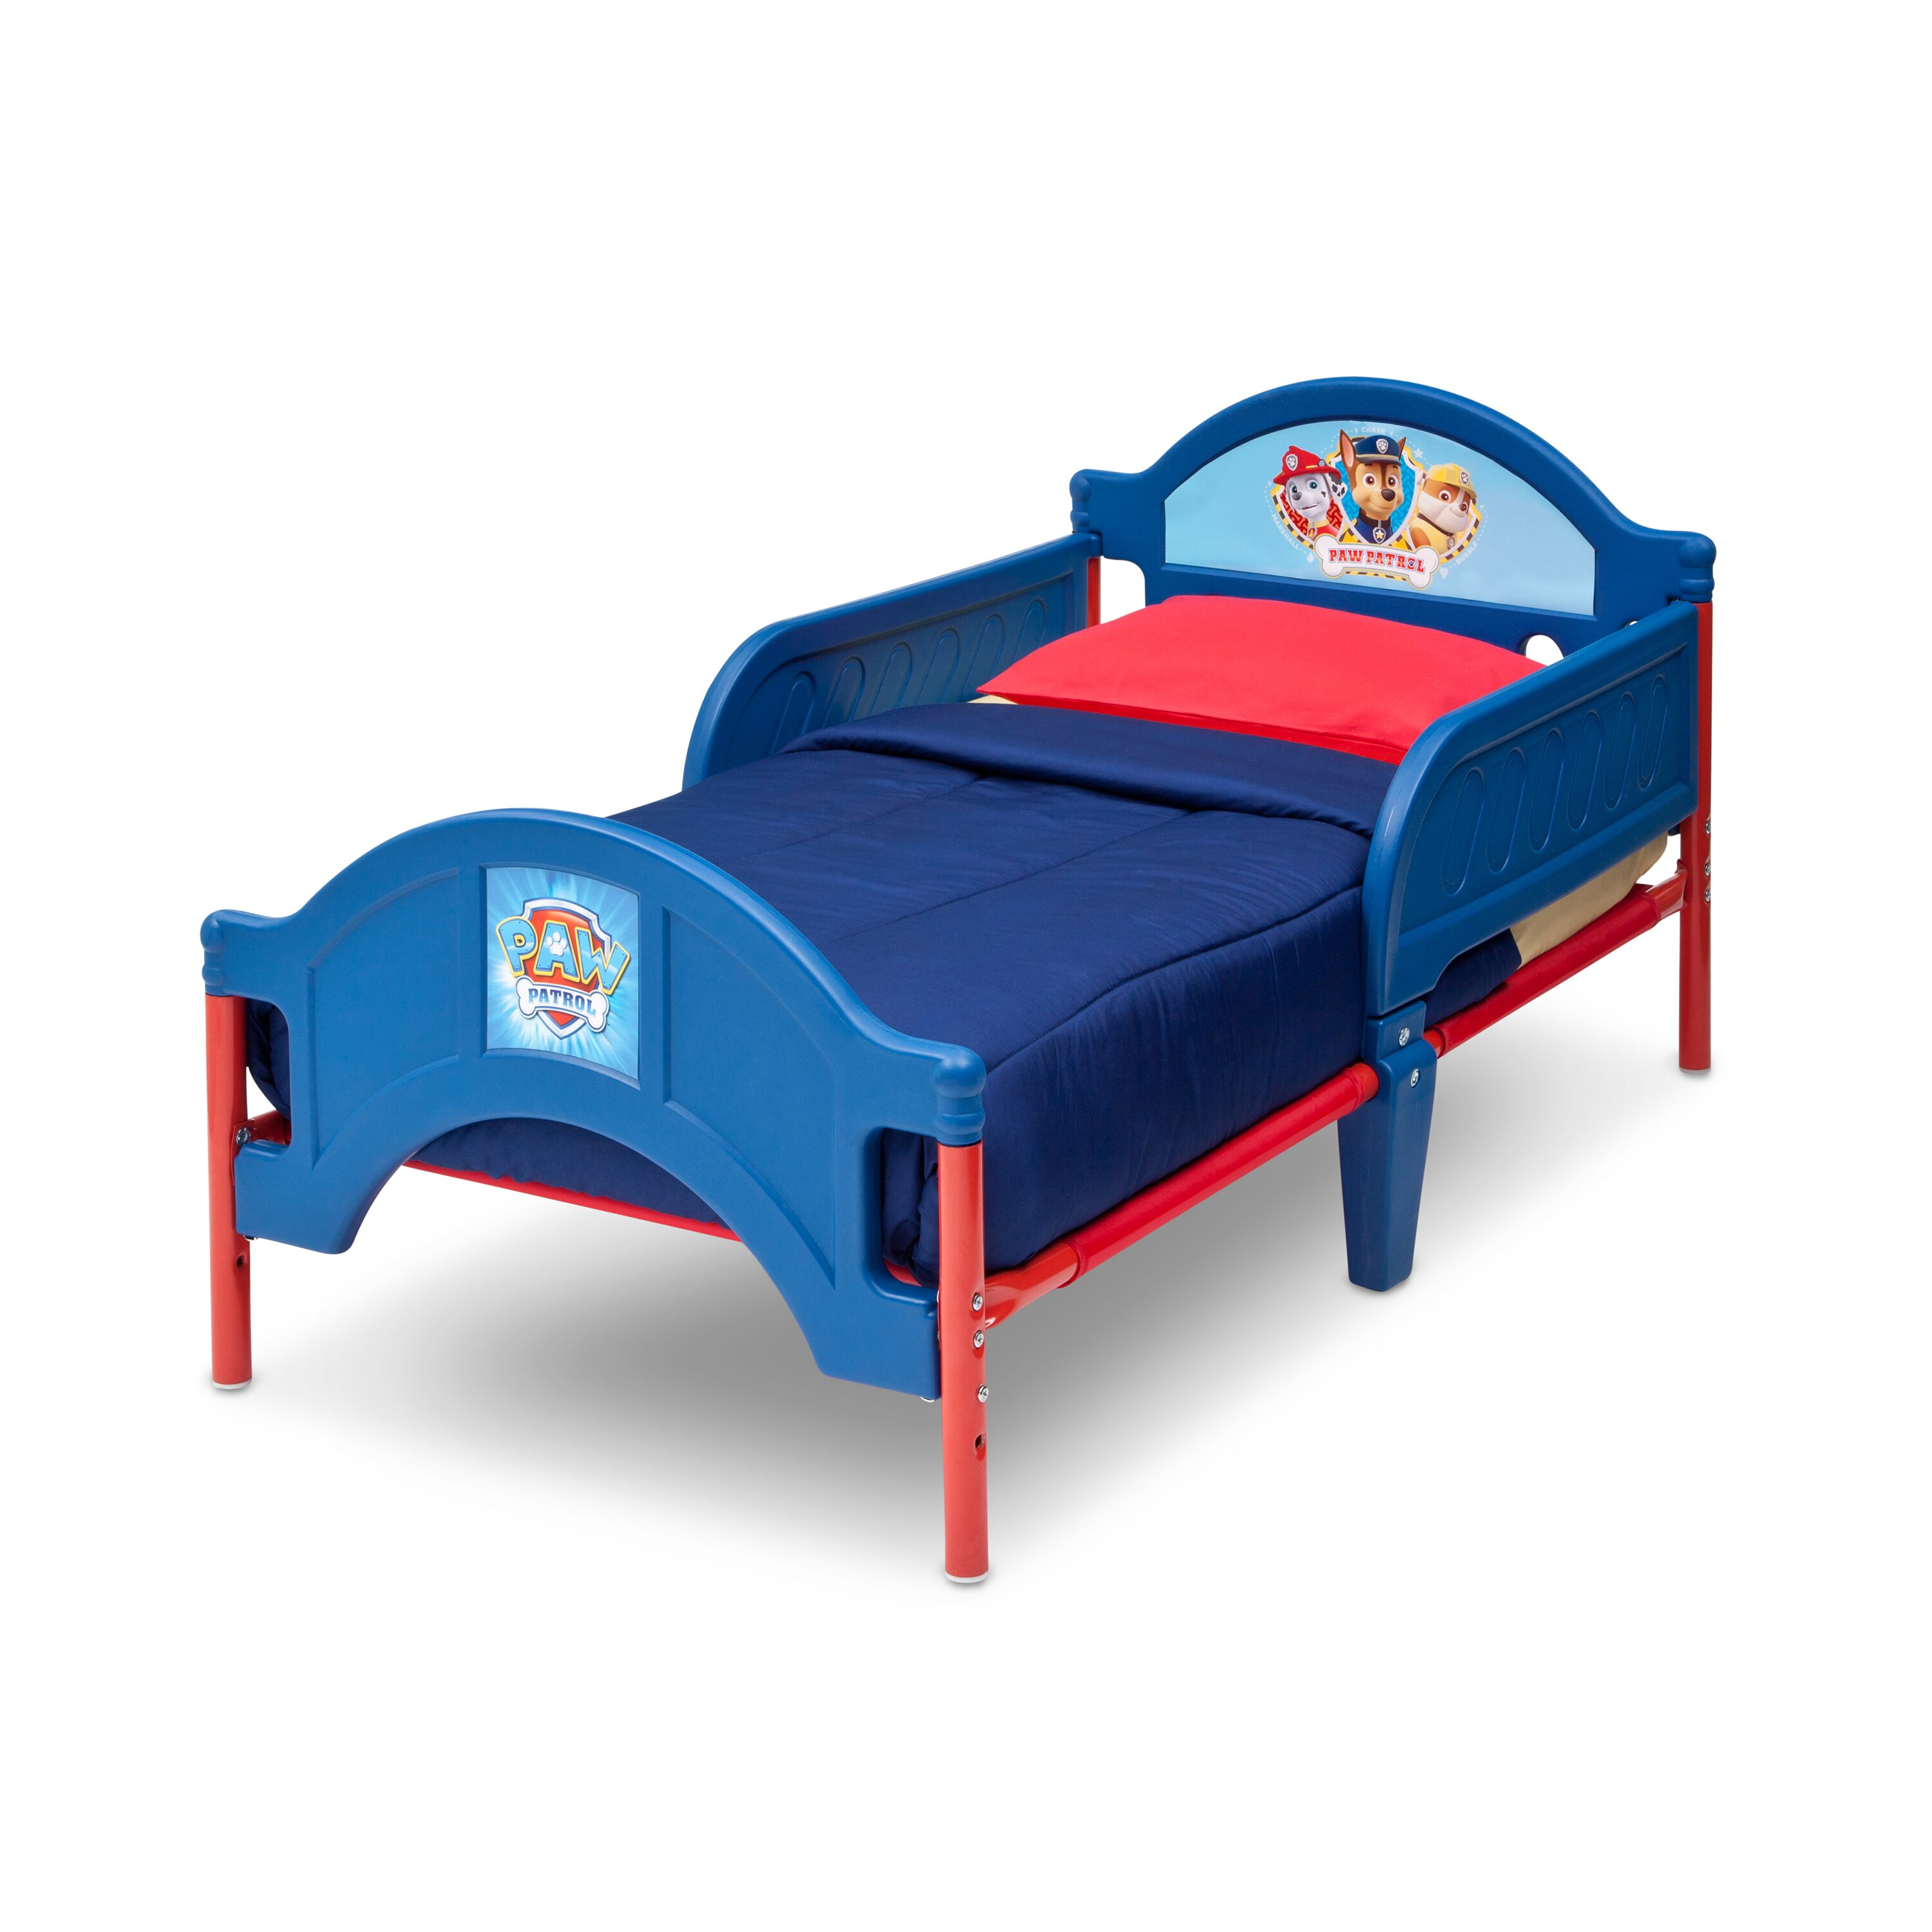 Delta Children Nick Jr PAW Patrol Convertible Toddler Bed